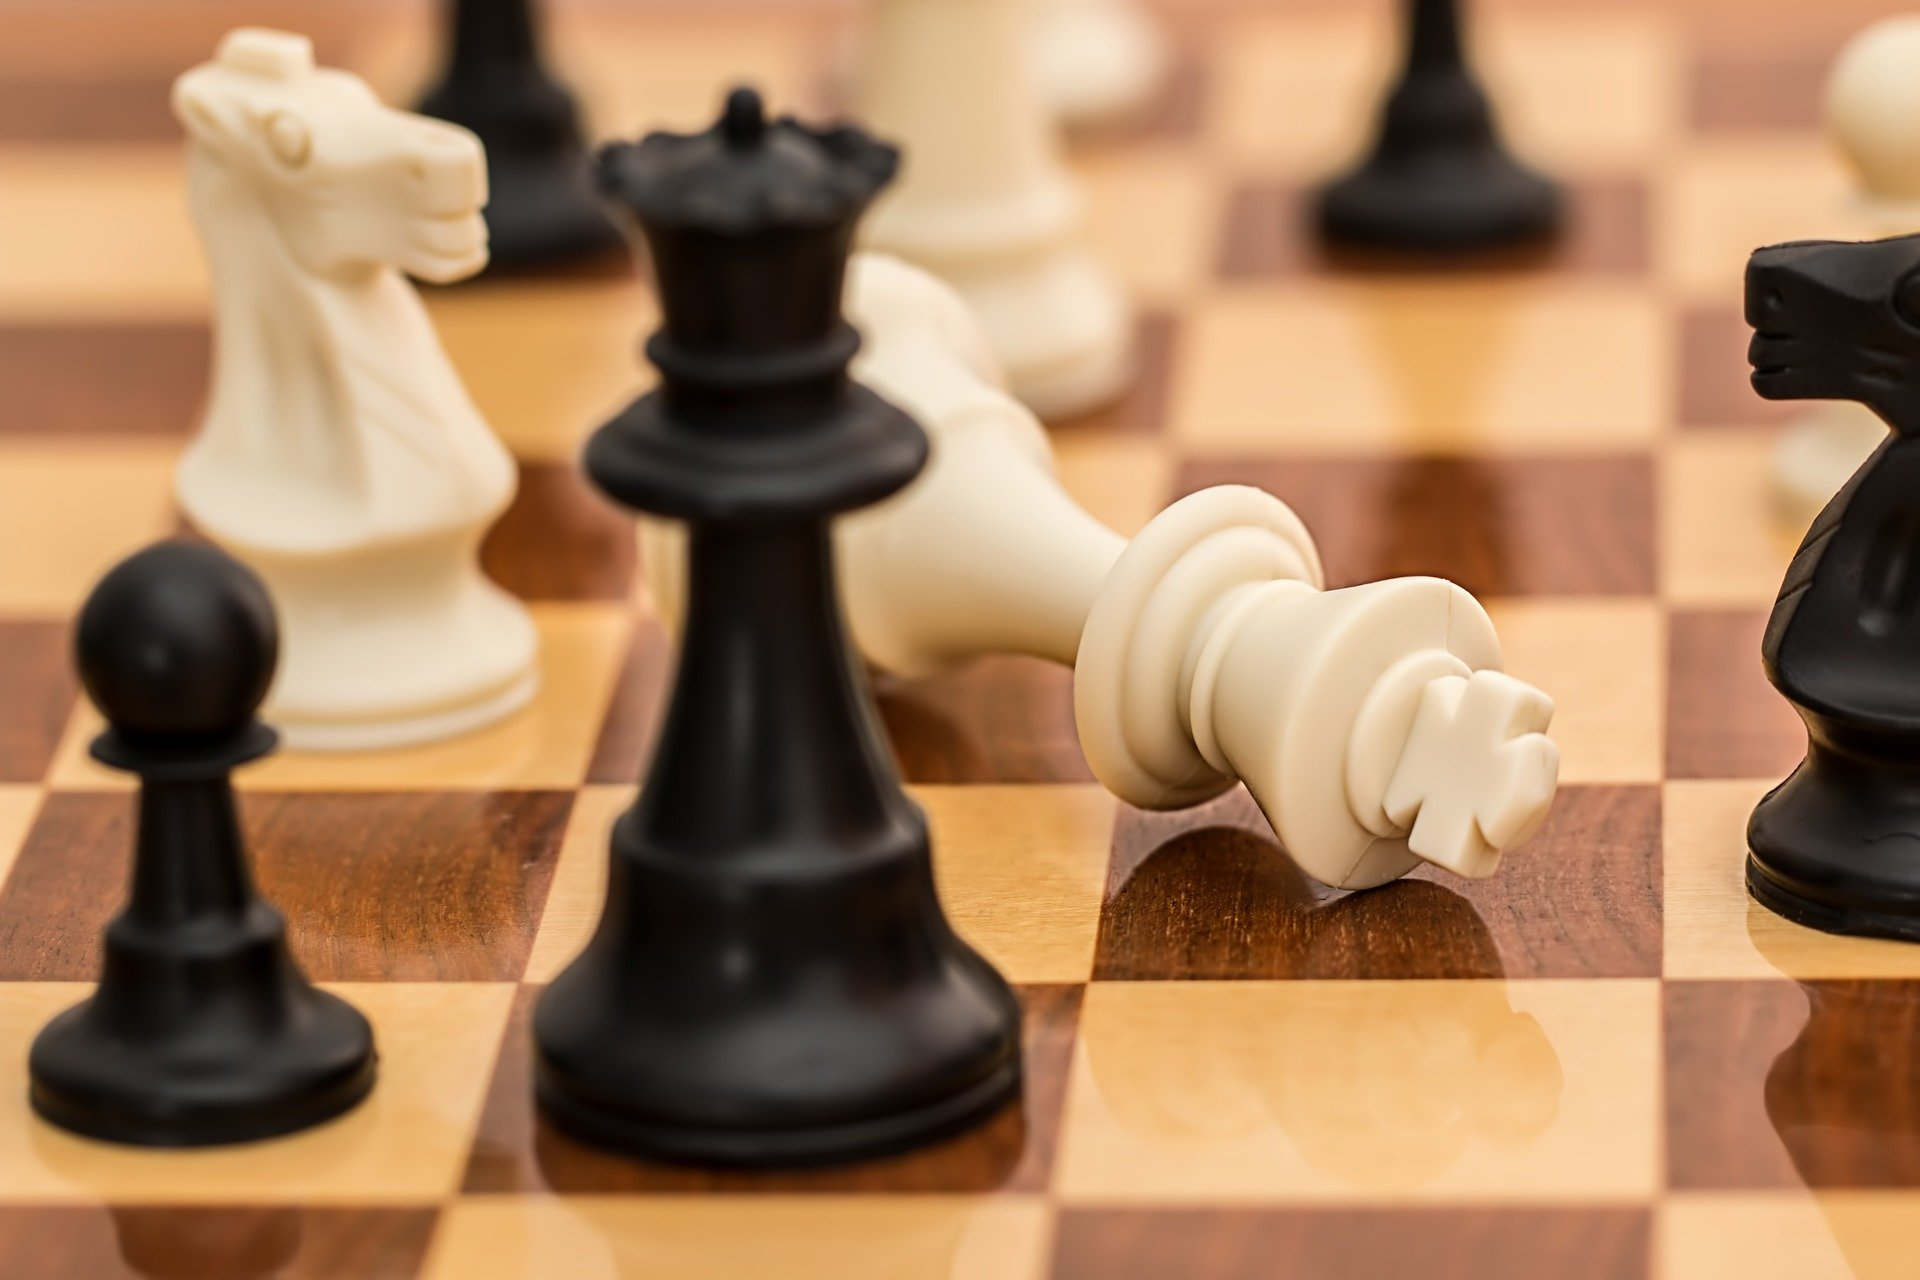 close in view of chess board. black queen standing next to tipped over white king